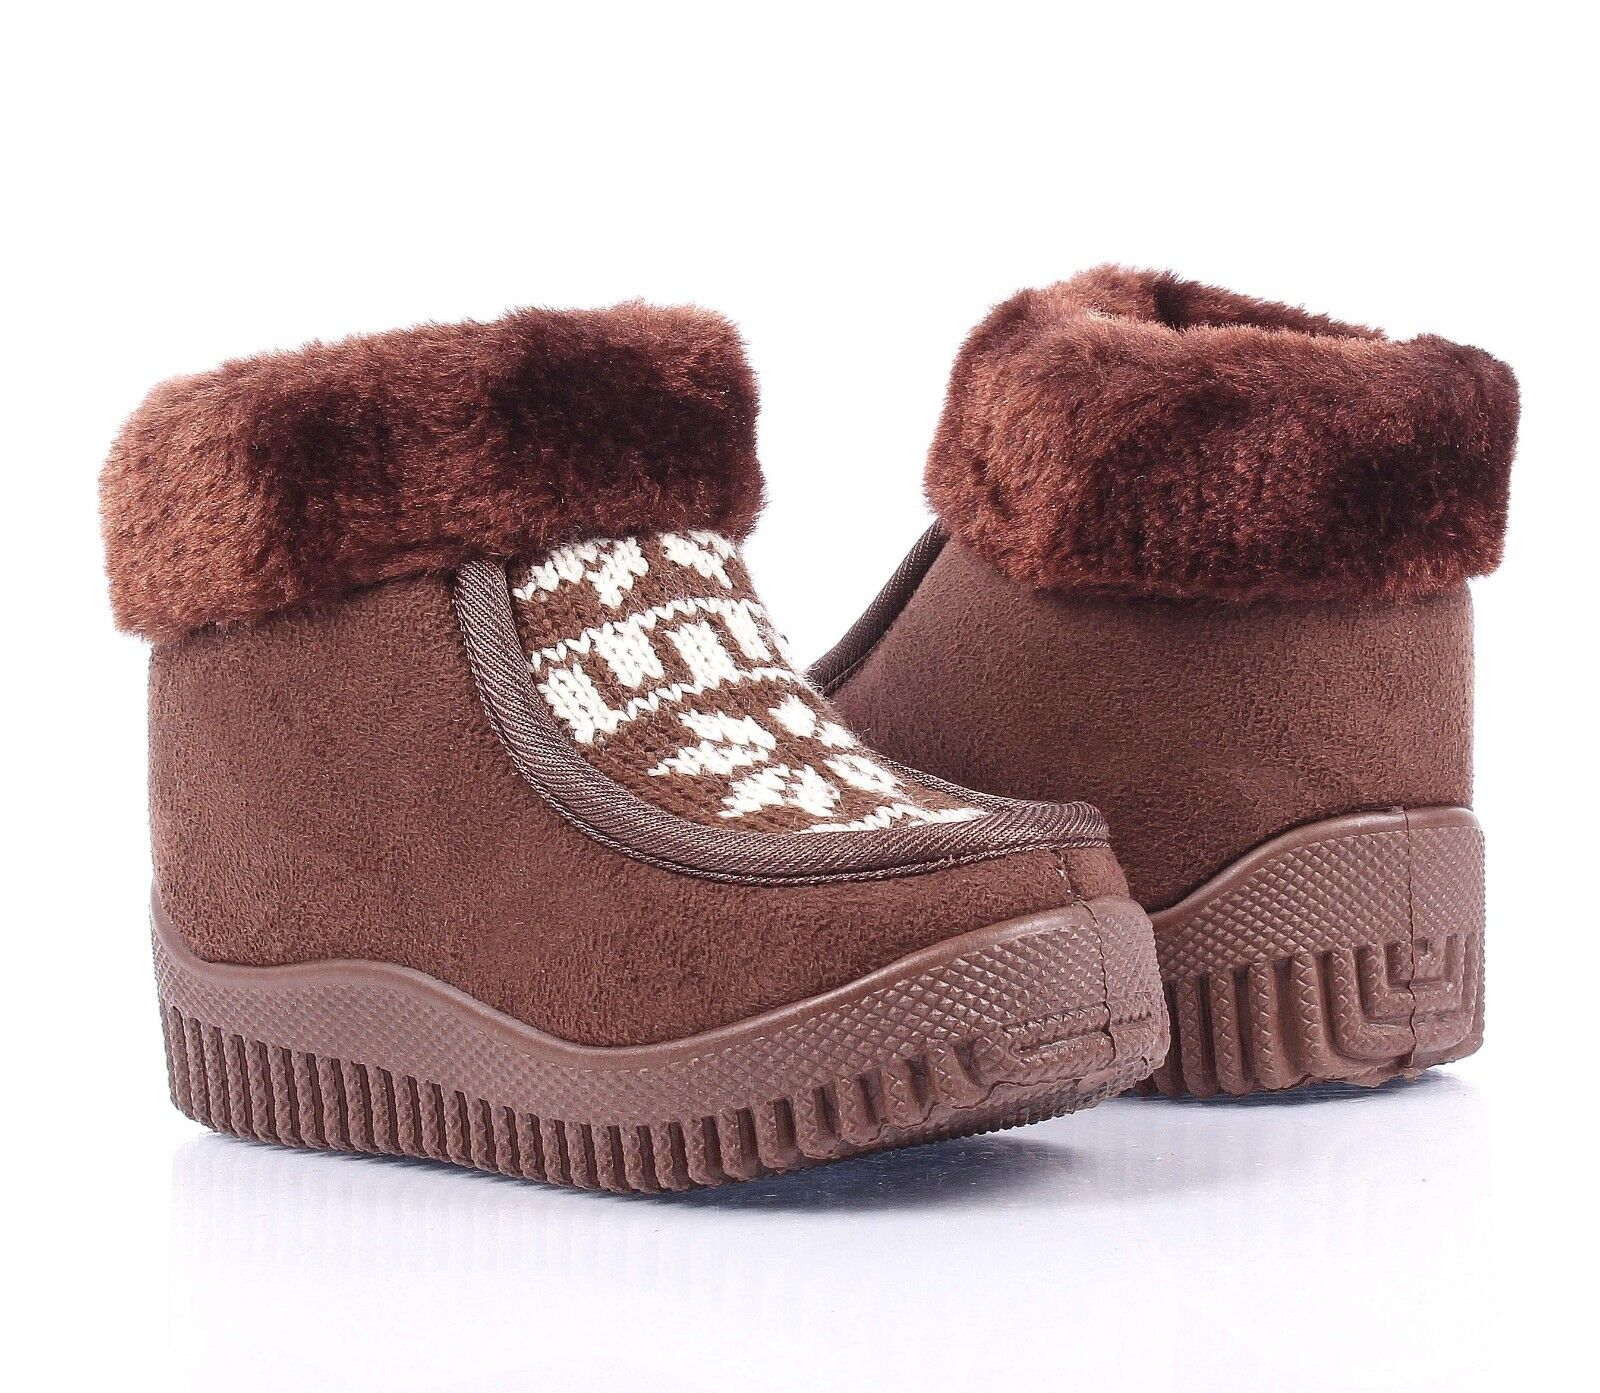 Camel Zipper Open Faux Fur Booties Toddlers Kids Girls Winter Boots Shoes